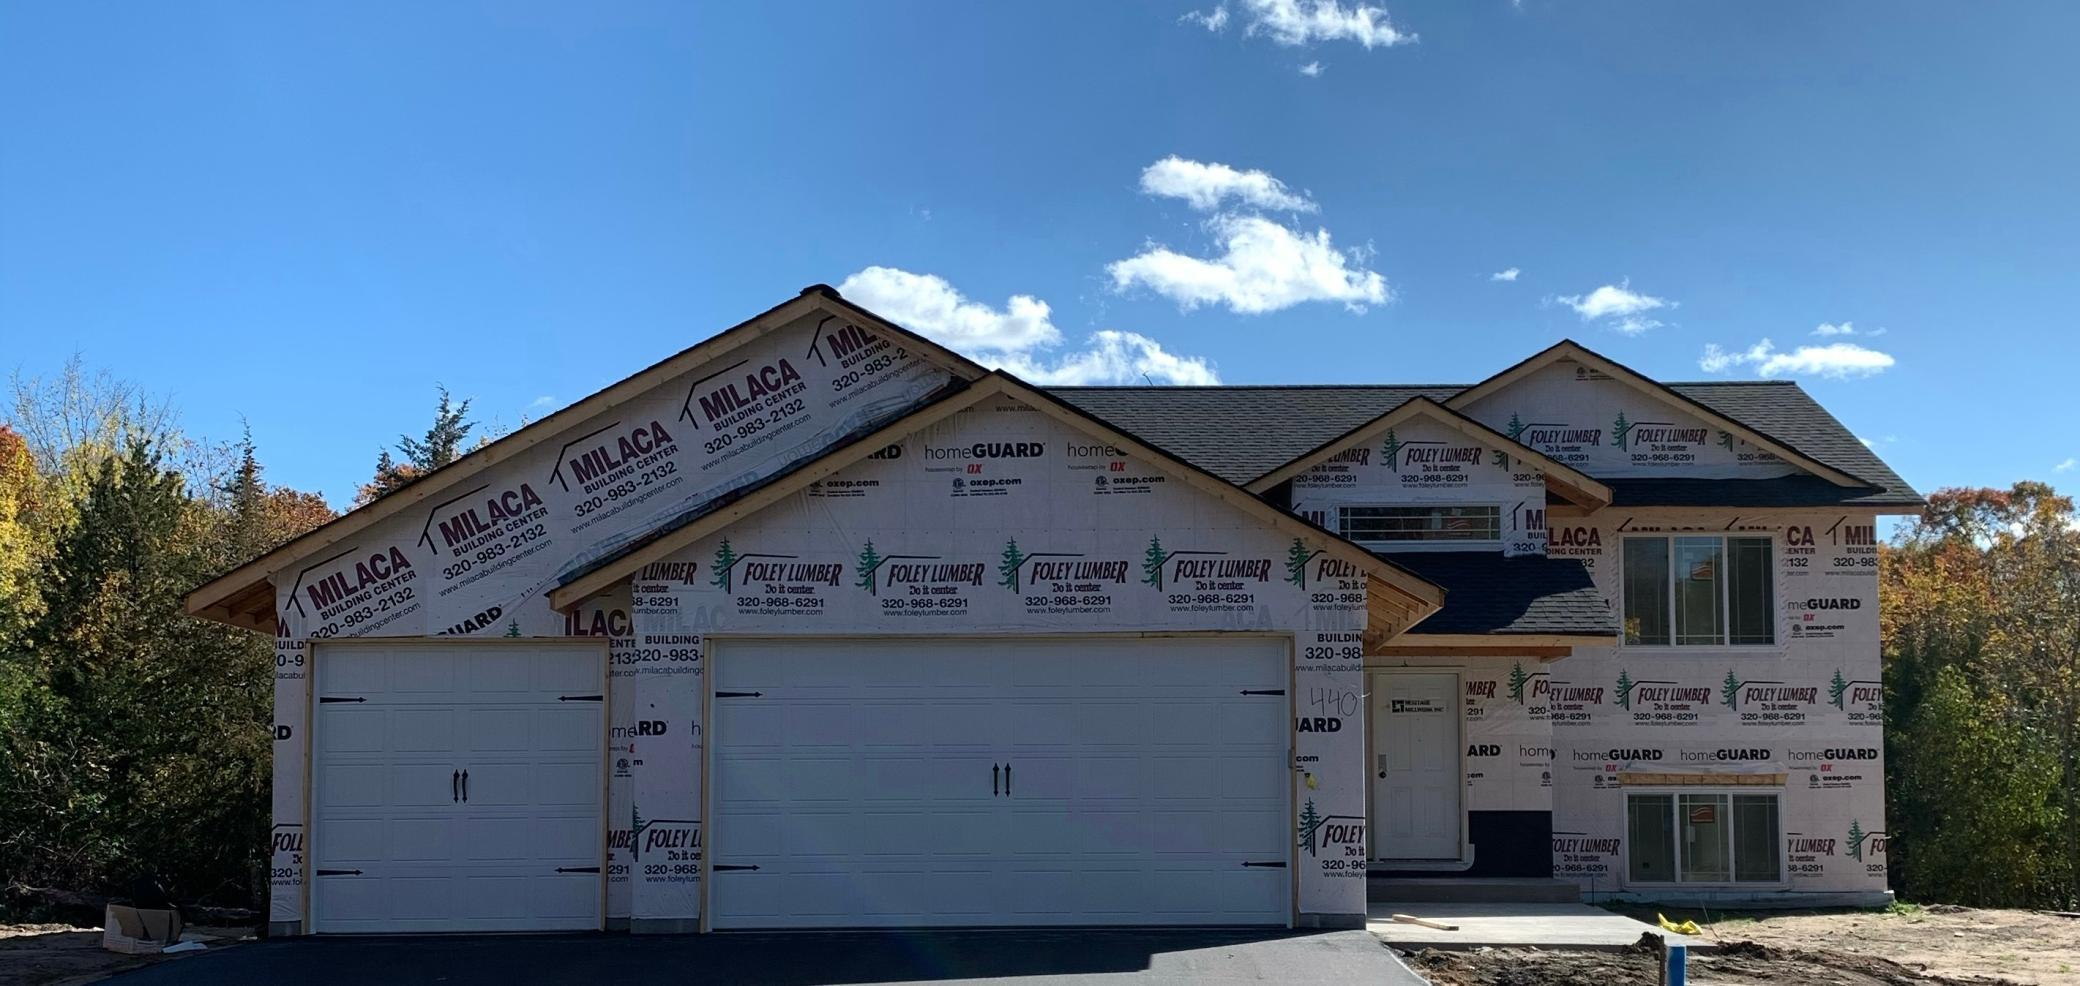 Beautiful new construction with fully finished basement.  Partially wooded lot in a great neighborhood.  Home features neutral colors, luxury vinyl plank flooring, open floor plan, oil rubbed bronze fixtures, granite center island, Hi-def laminate counters, carpet living room, family room and bedrooms, walkout lower level.  Still time to choose flooring and counter tops.